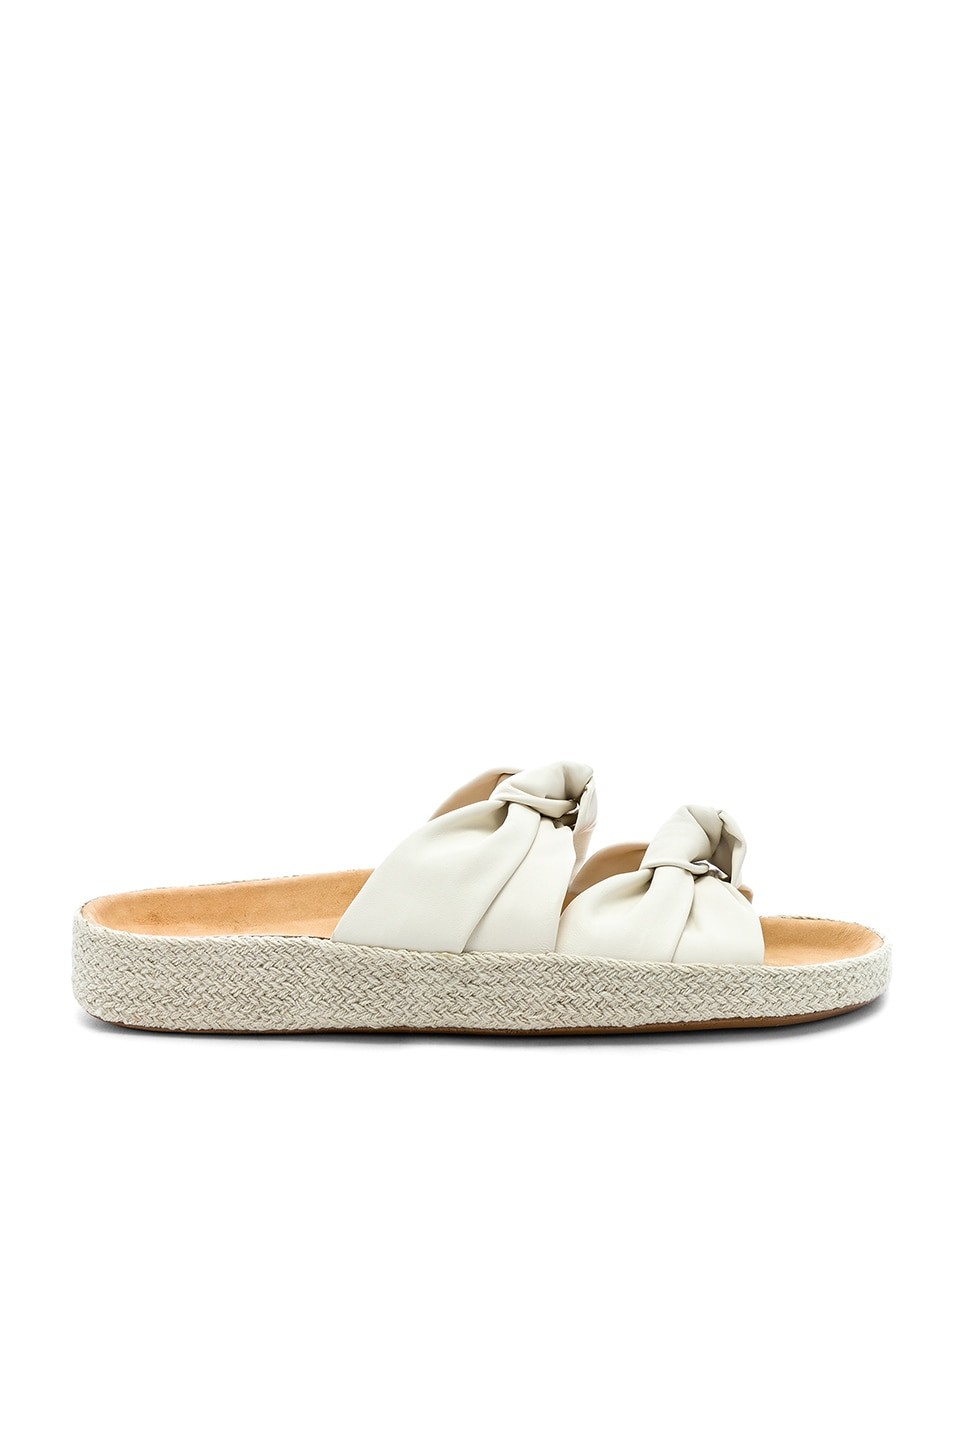 Soludos Knotted Summer Slide in Ivory